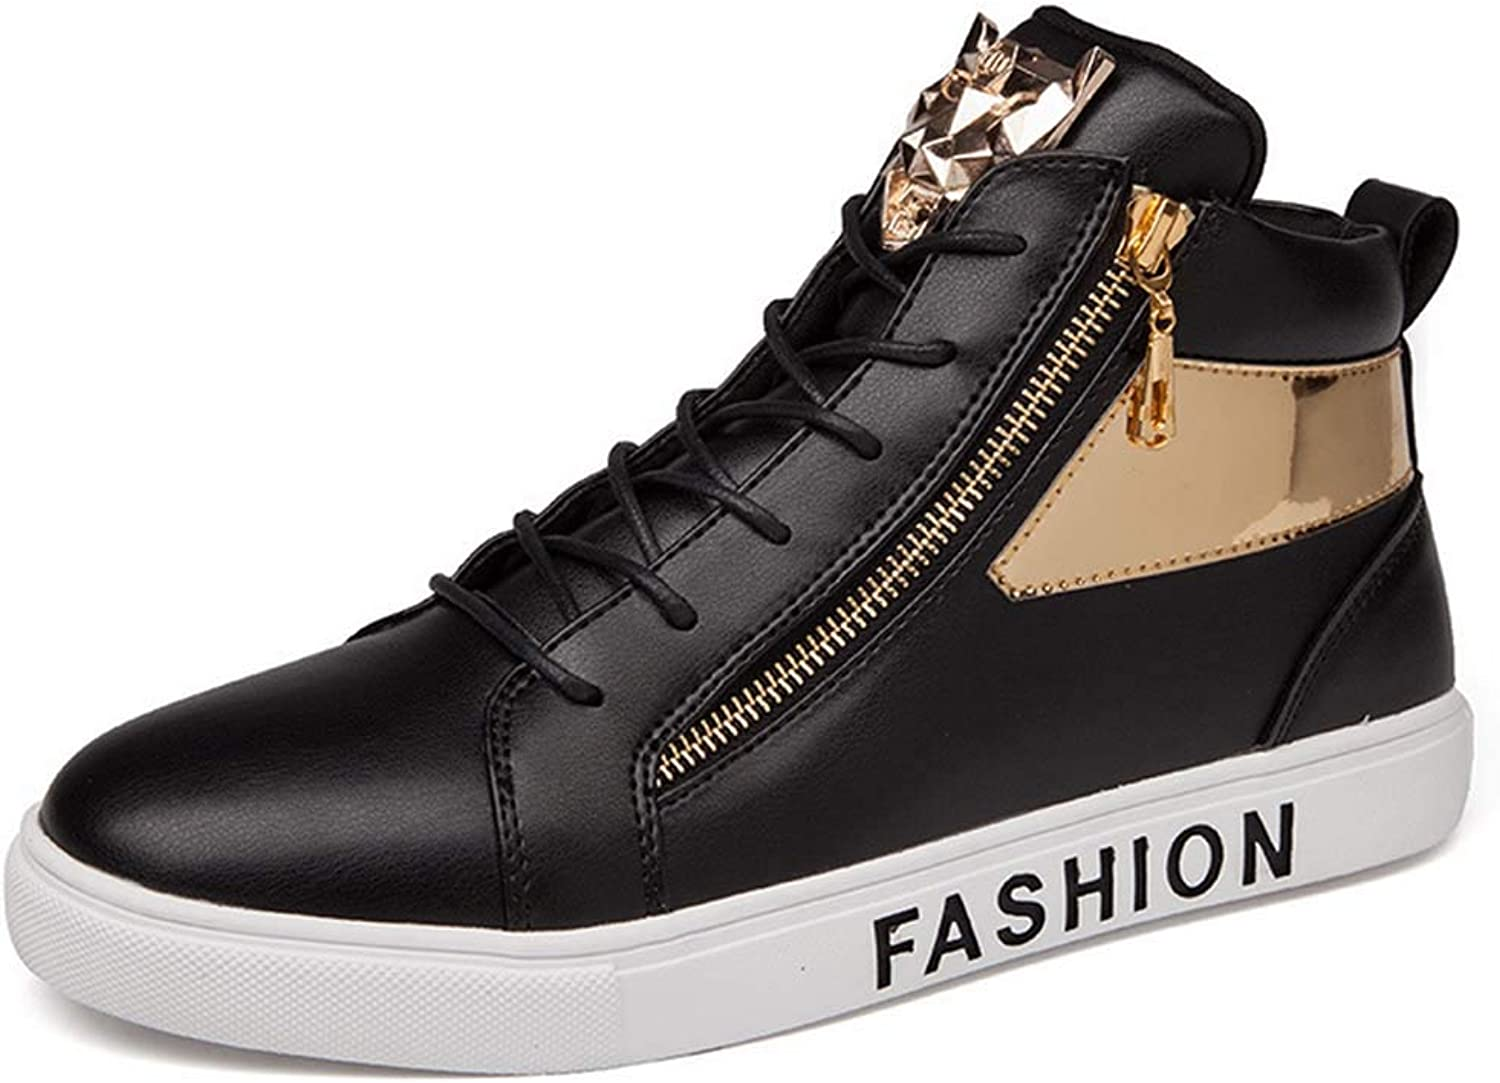 GLSHI Men High Top Sneakers 2018 Autumn New Casual Flat shoes Street Personality Lightweight Trainers